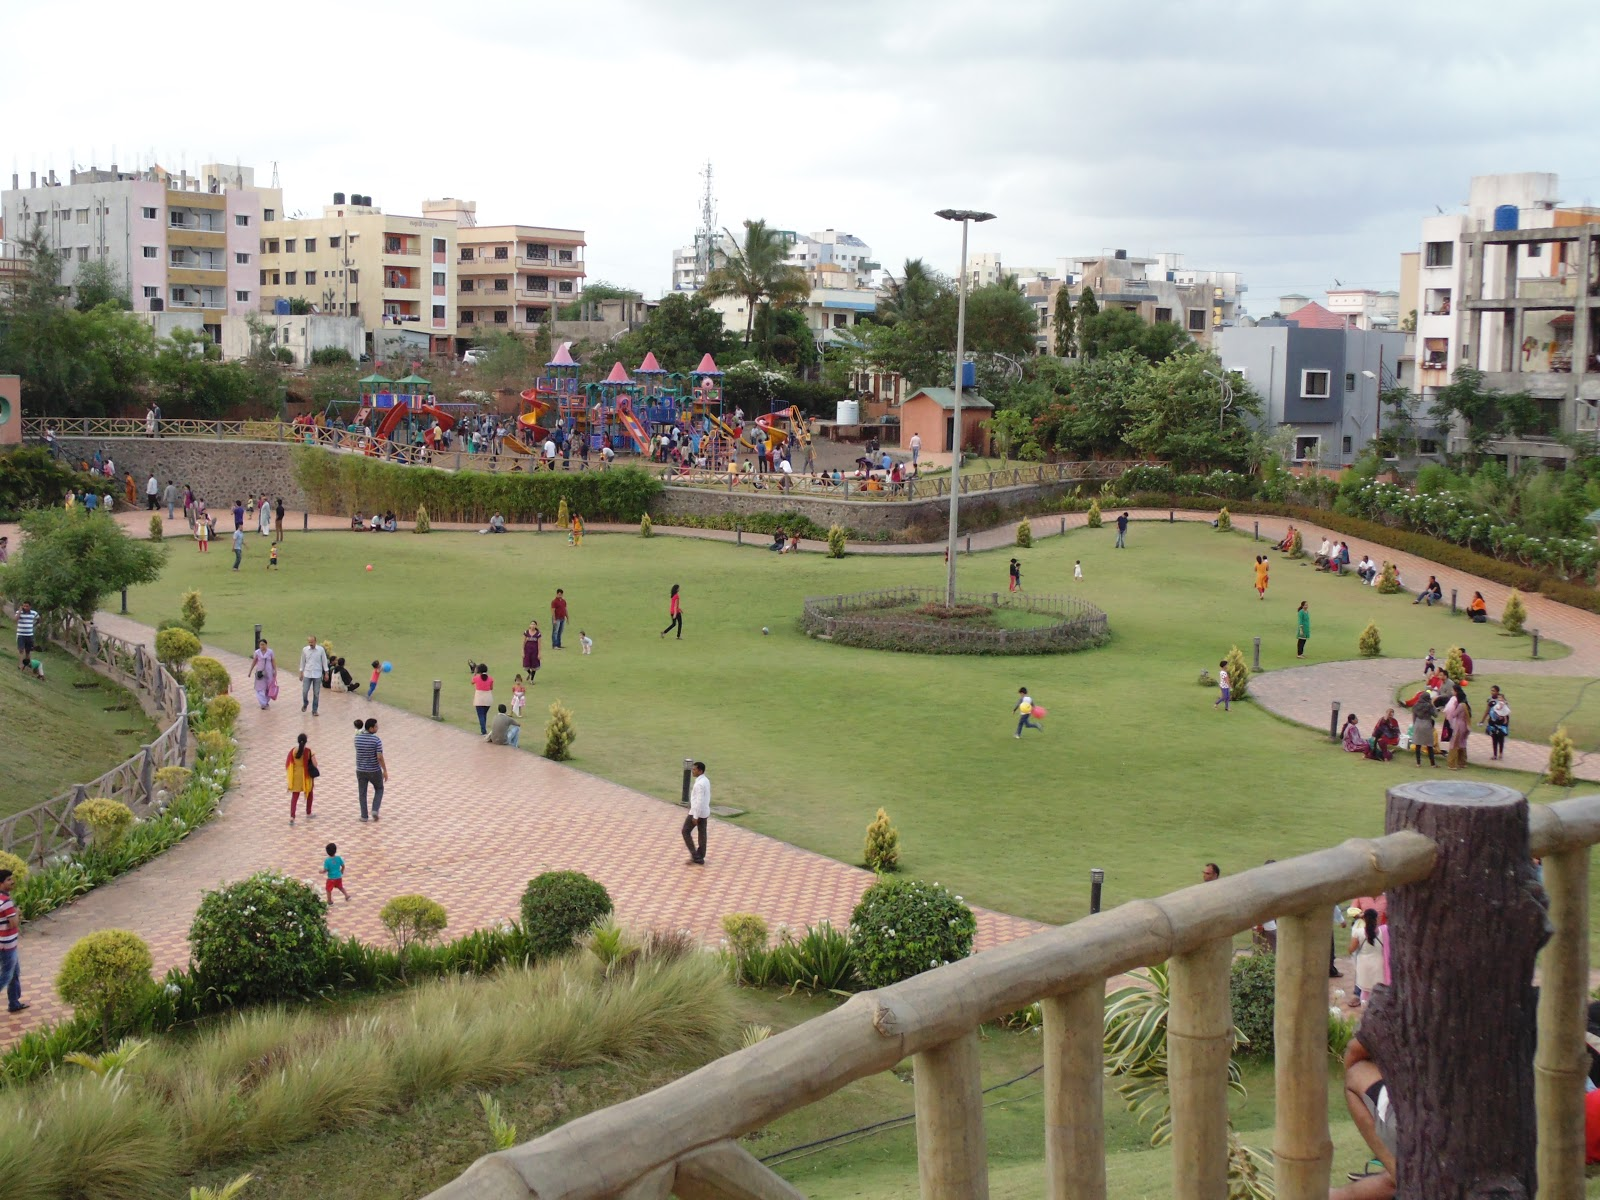 SavitriBai Phule Garden (Udyan) - A nature place for relaxation near pune